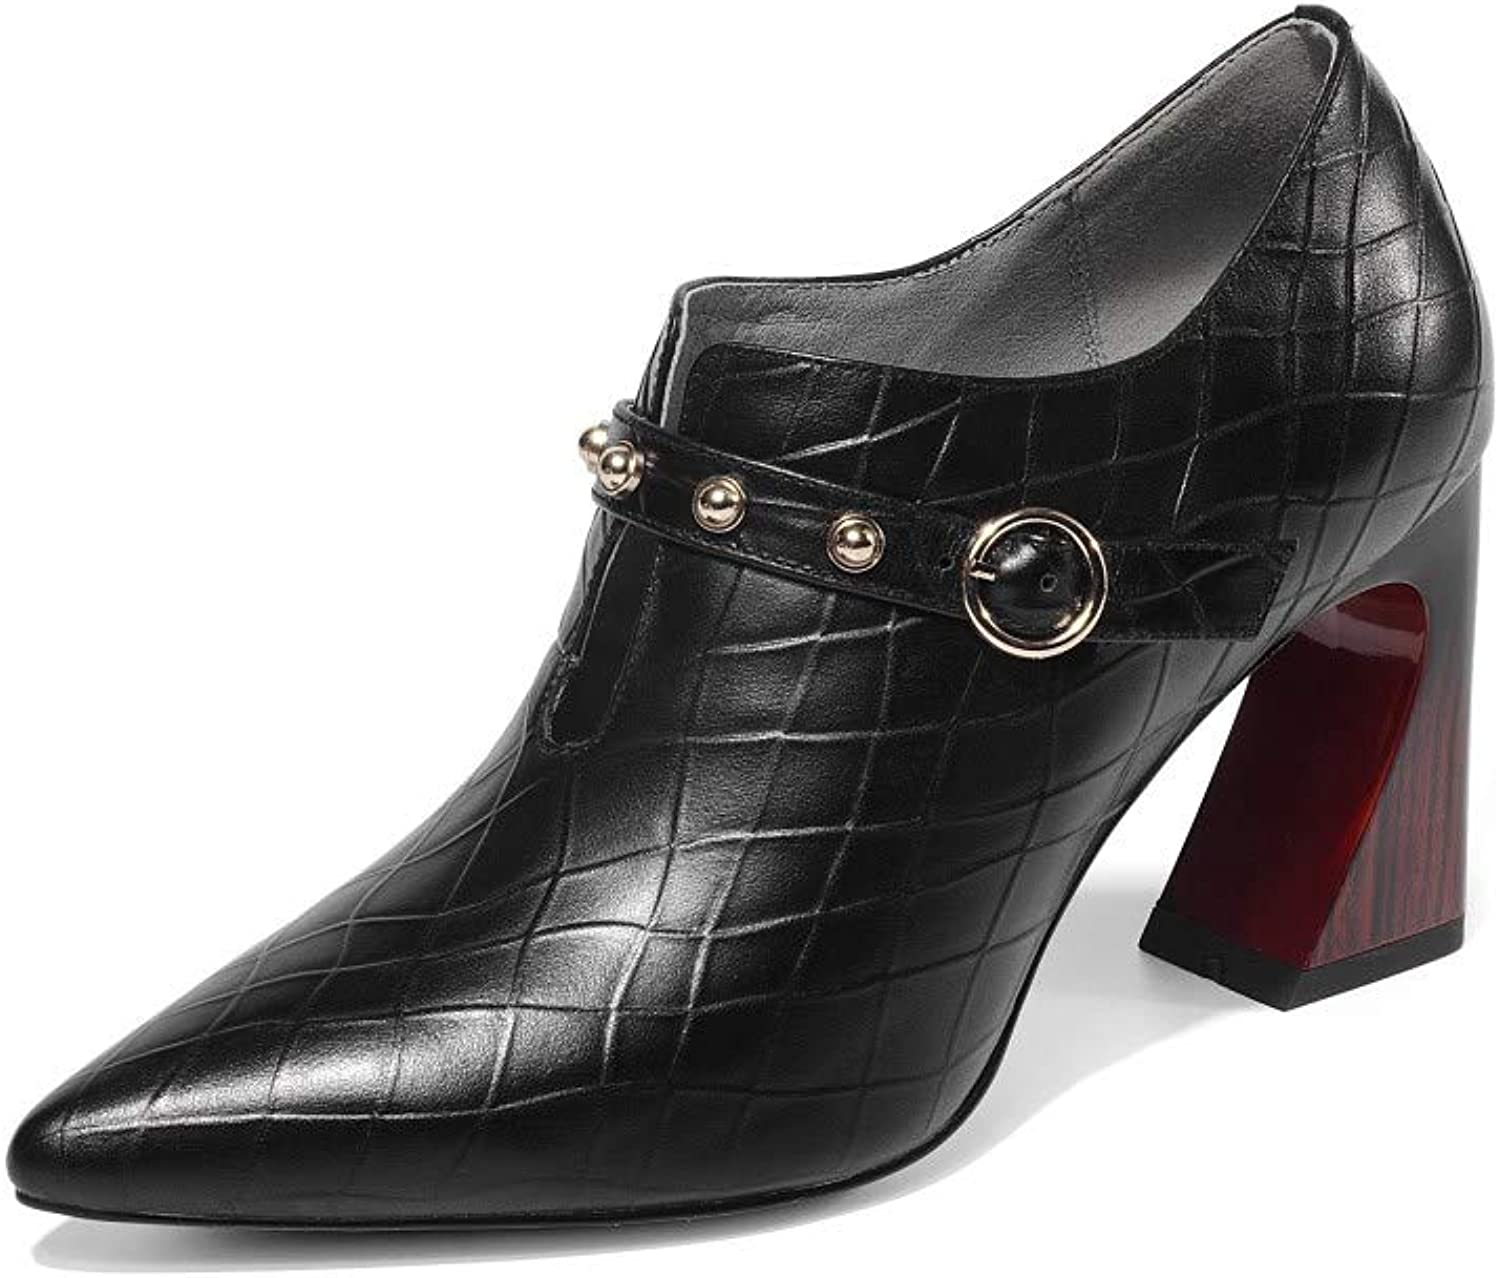 Nine Seven Women's Genuine Leather Pointed Toe Exquisite Mid Heel Handmade Elegant Slip On Buckle Strap Fashion Dress Ankle Boots